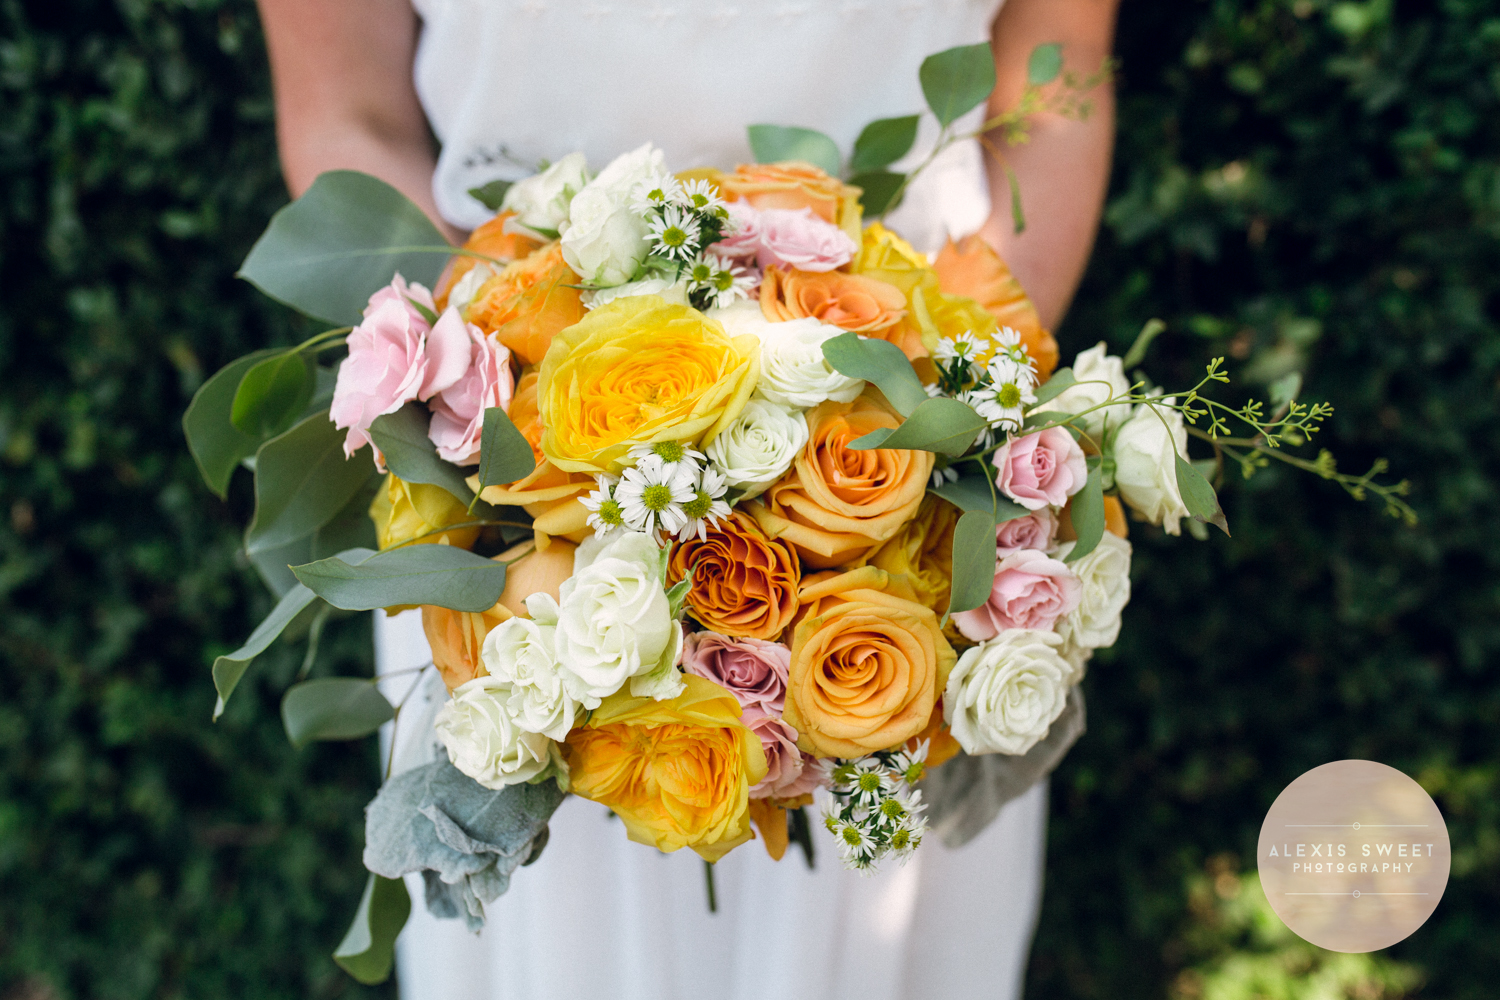 alexis-sweet-photography-ivory-and-beau-bridal-boutique-monterey-square-wedding-savannah-wedding-planner-savannah-weddings-historic-savannah-wedding-vintage-wedding-peach-wedding-southern-vintage-wedding-savannah-bridal-boutique-11.jpg